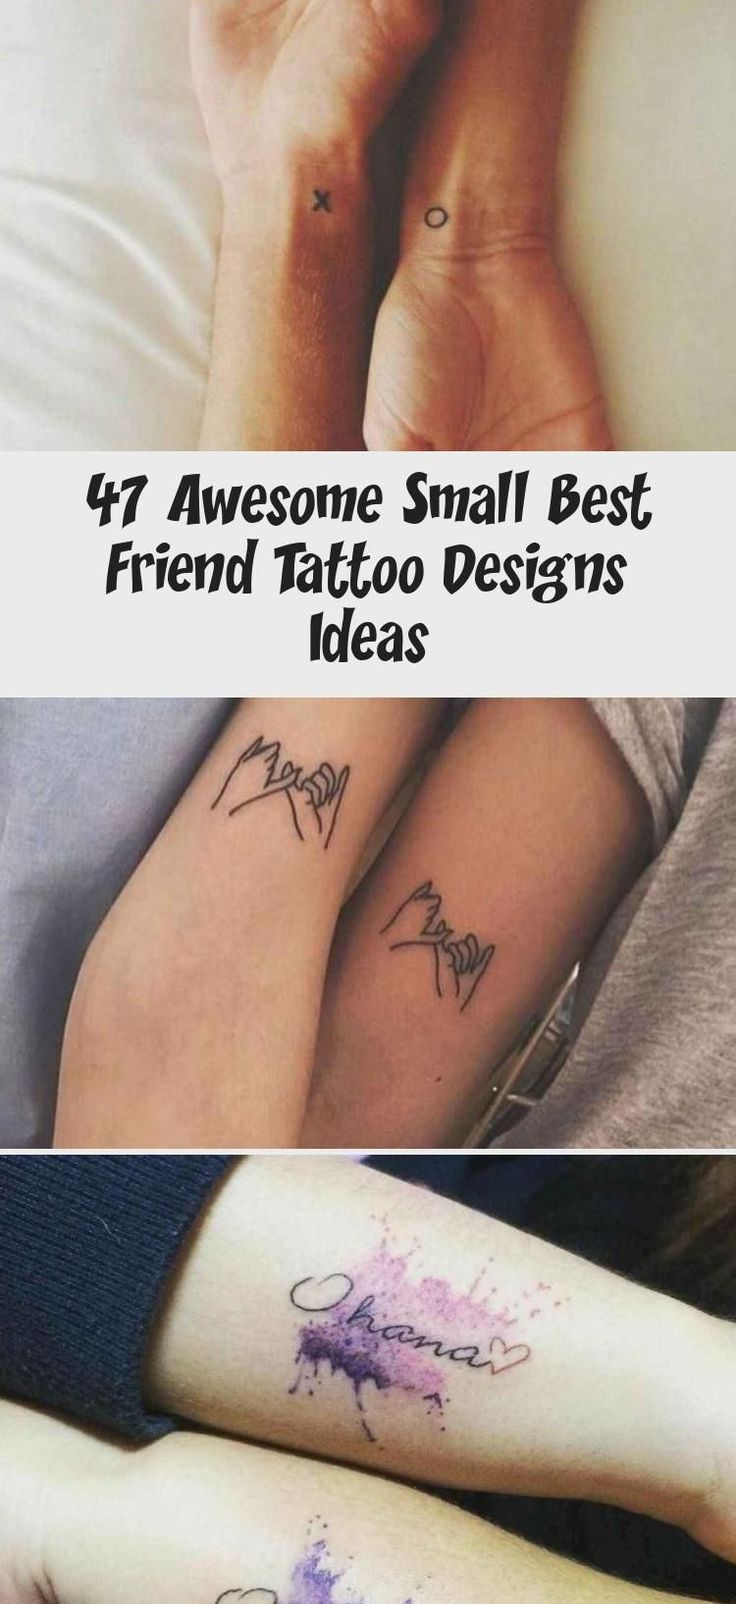 47 awesome small best friend tattoo designs ideas